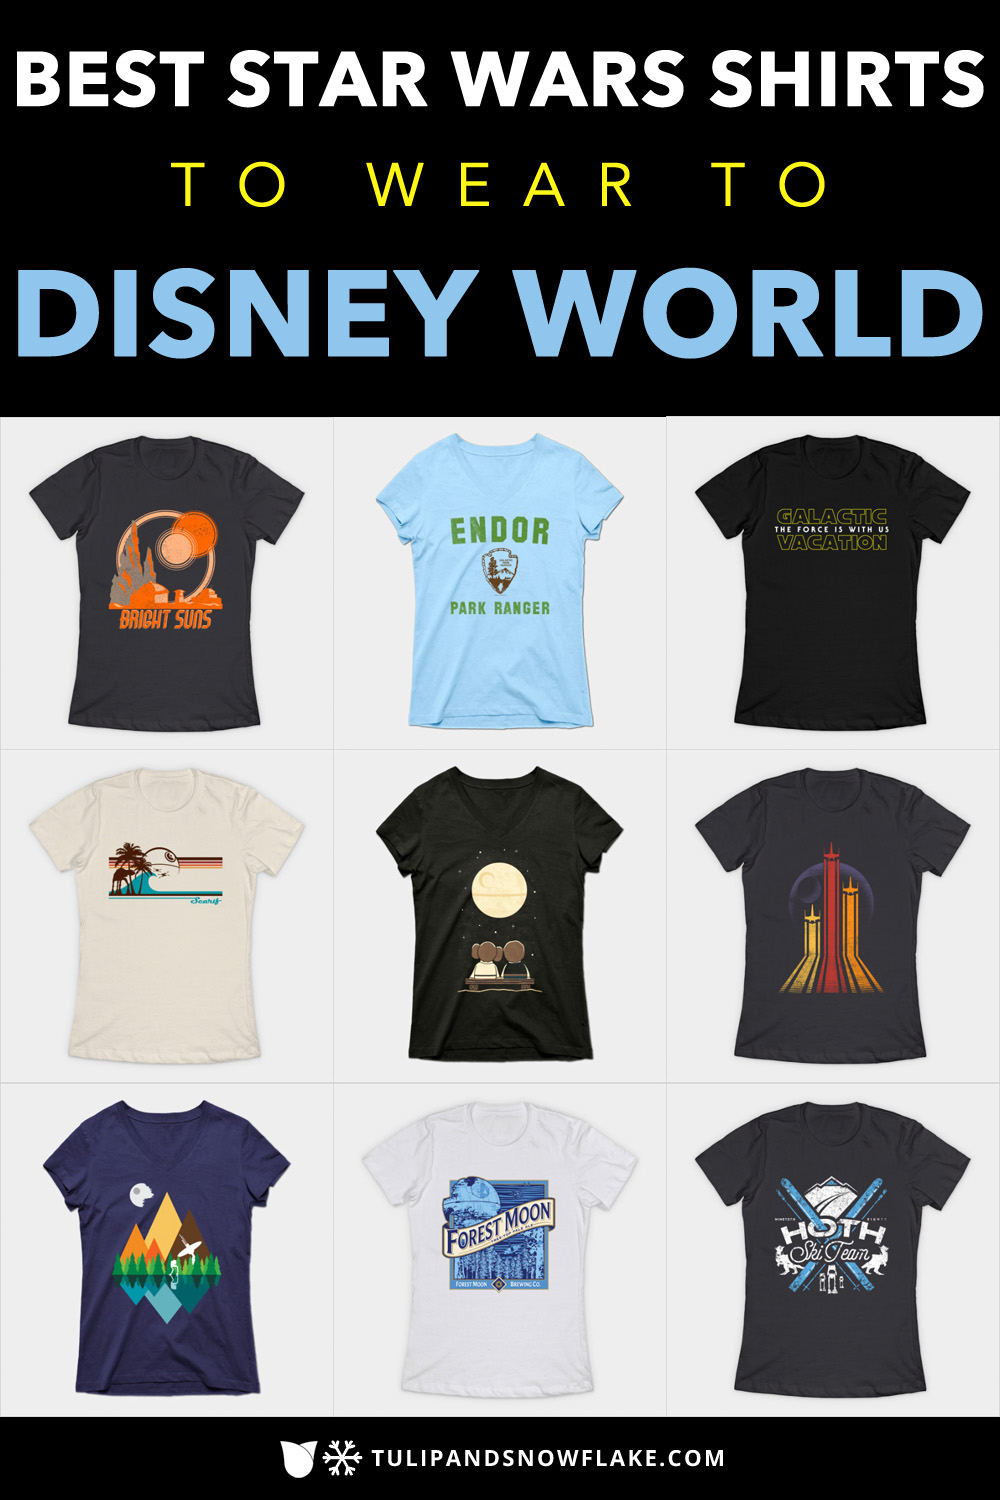 Best Star Wars Shirts to wear to Disney World